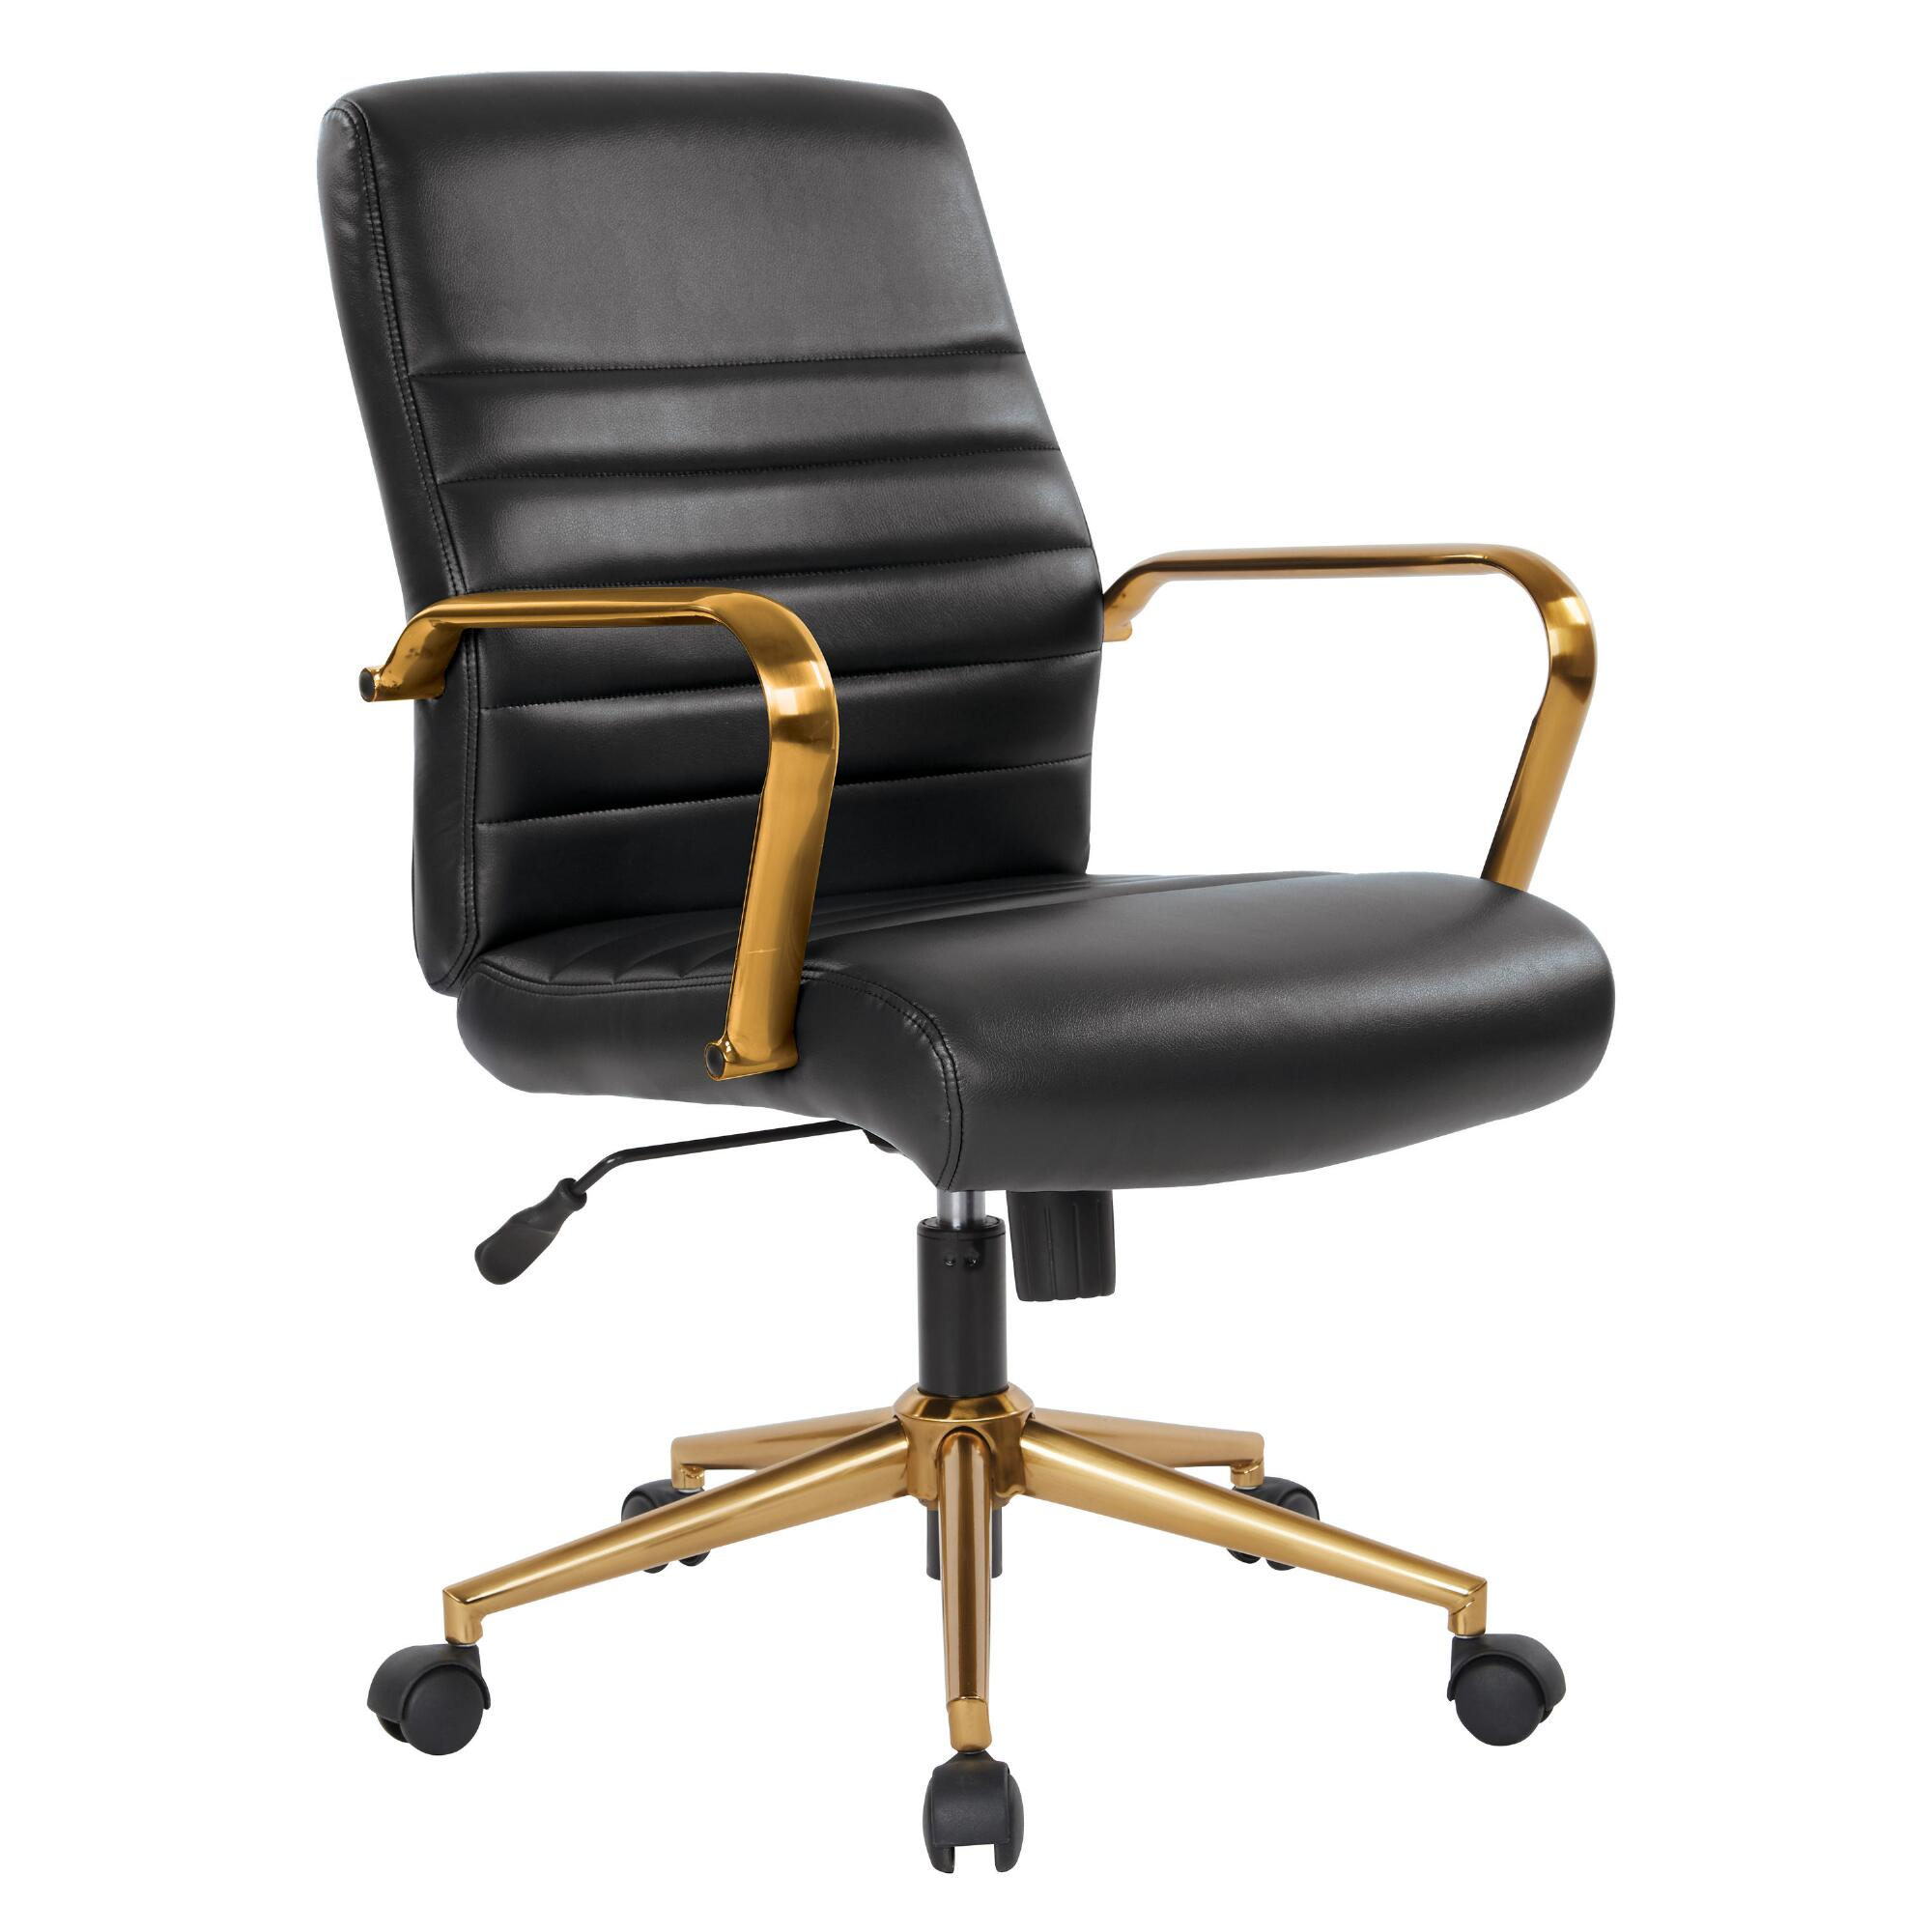 Decals For Baby Room, Faux Leather And Gold Armstrong Upholstered Office Chair World Market